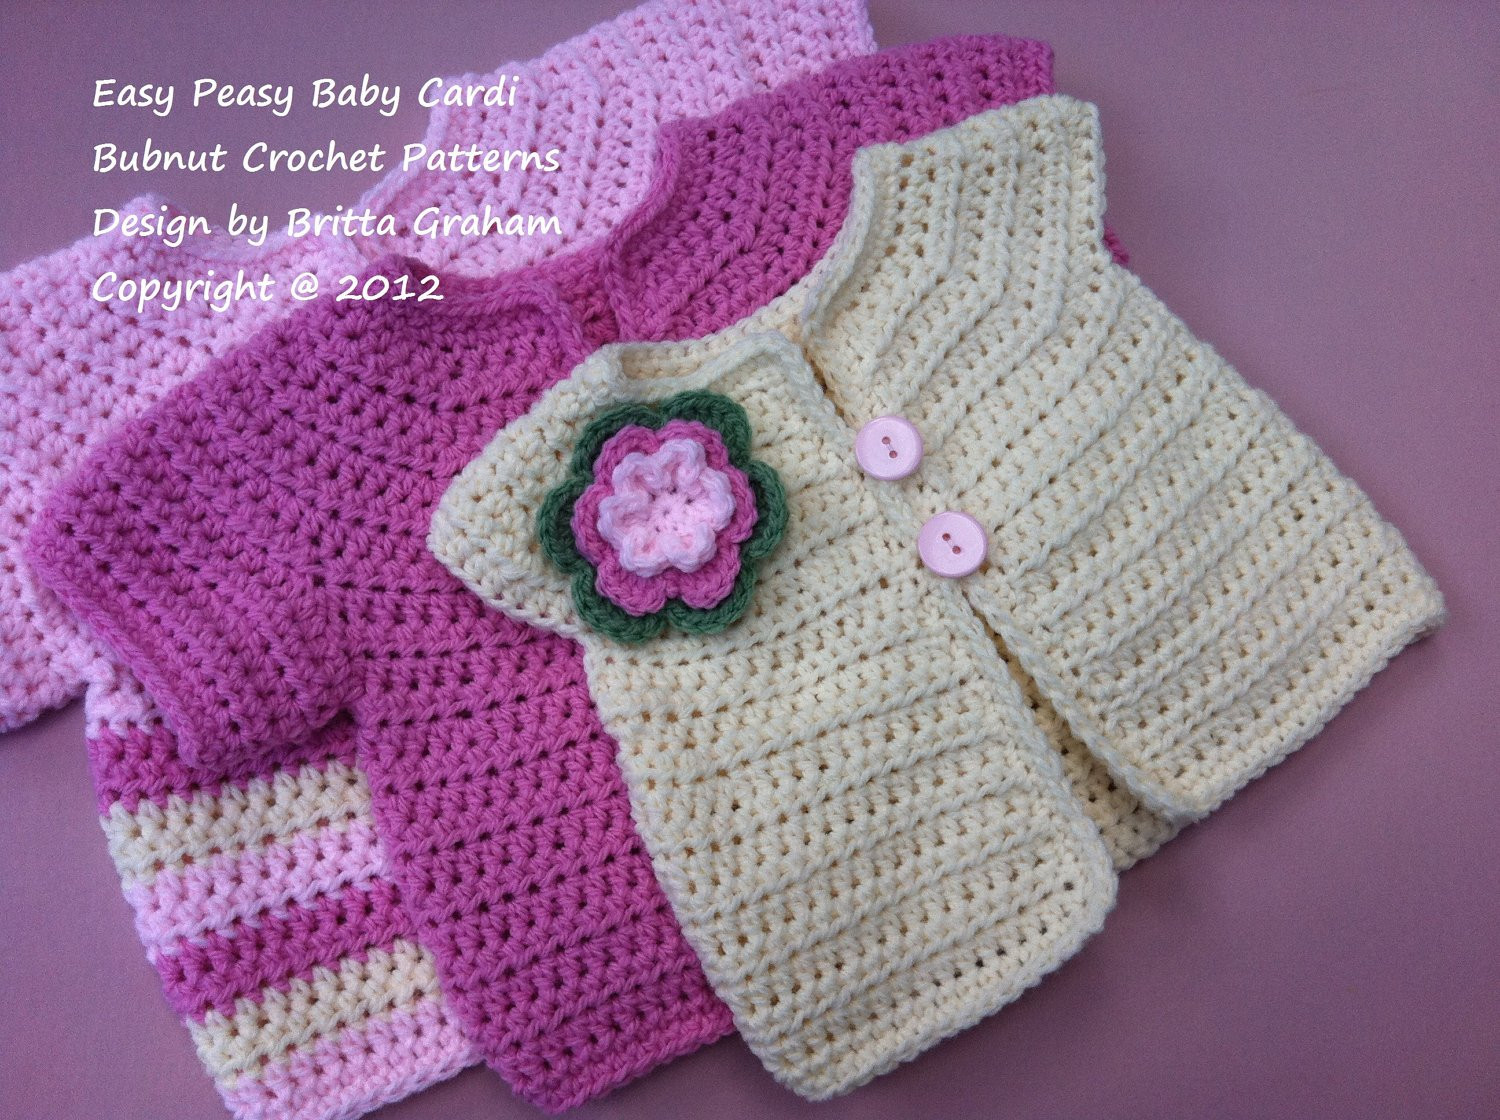 Crochet Baby Cardigan Unique Crochet Baby Jacket Pattern Easy Peasy Cardigan Crochet Of Amazing 49 Pics Crochet Baby Cardigan